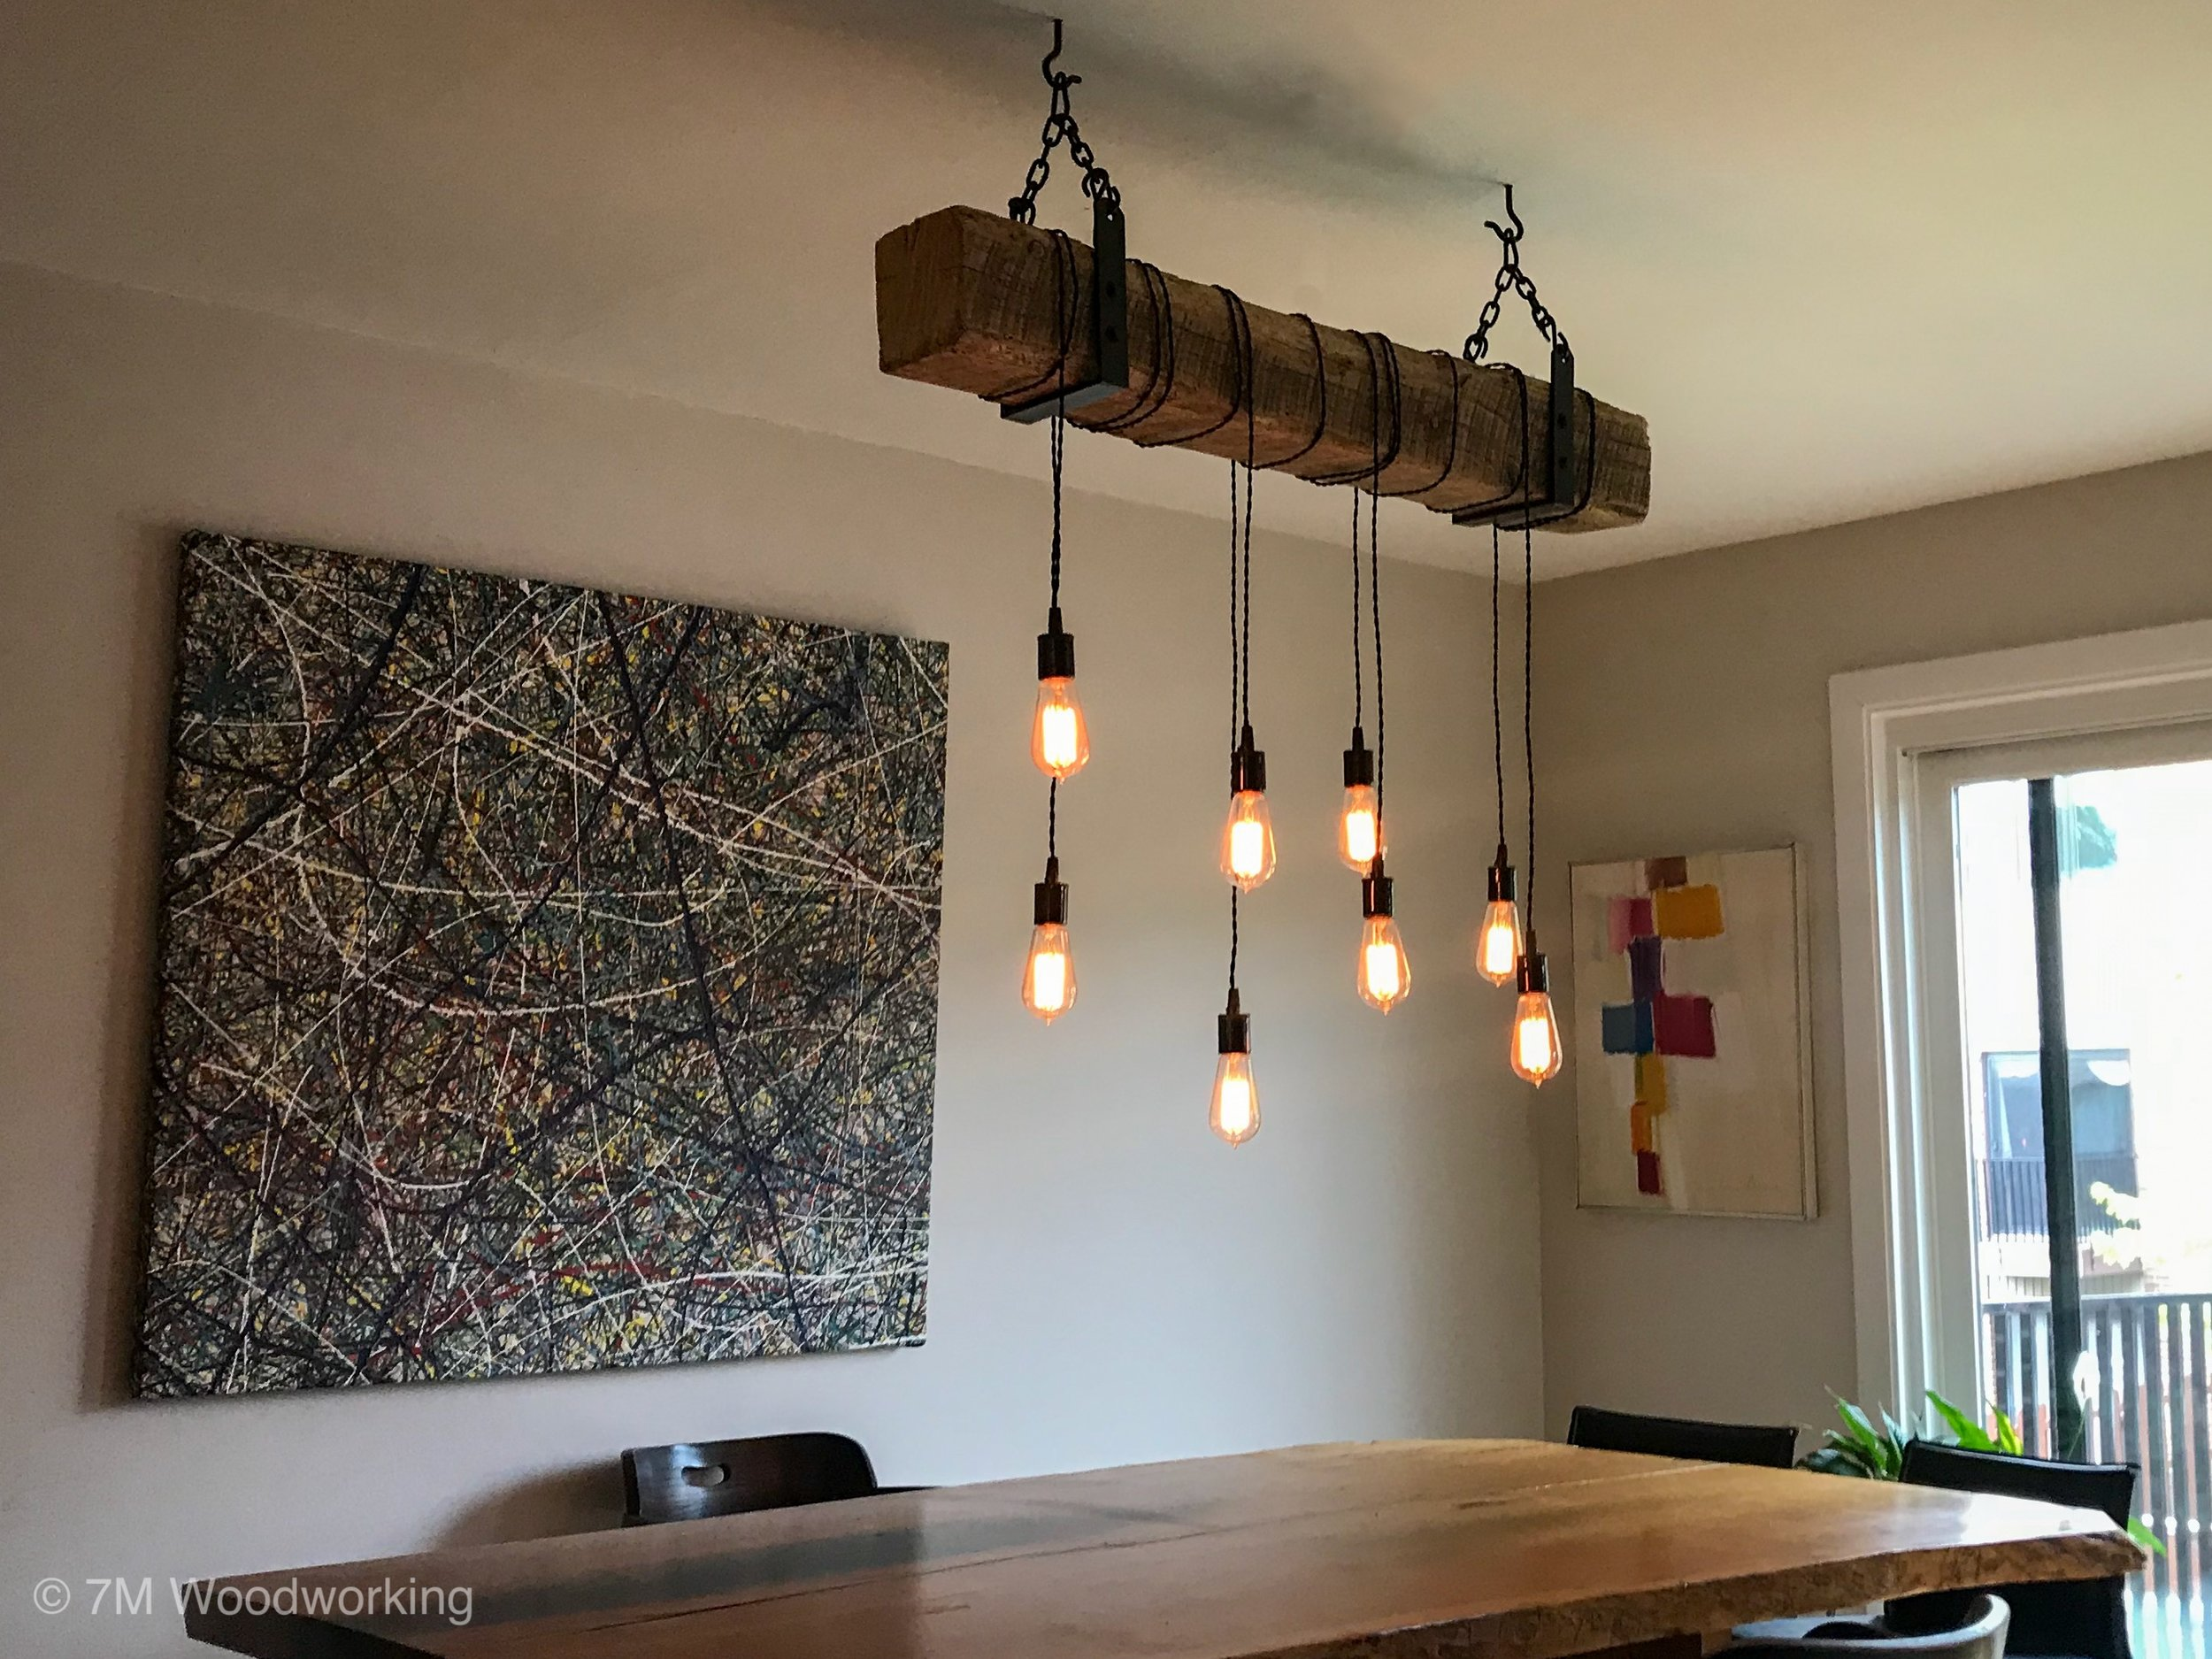 Rustic Wood Beam Light Fixture by 7M